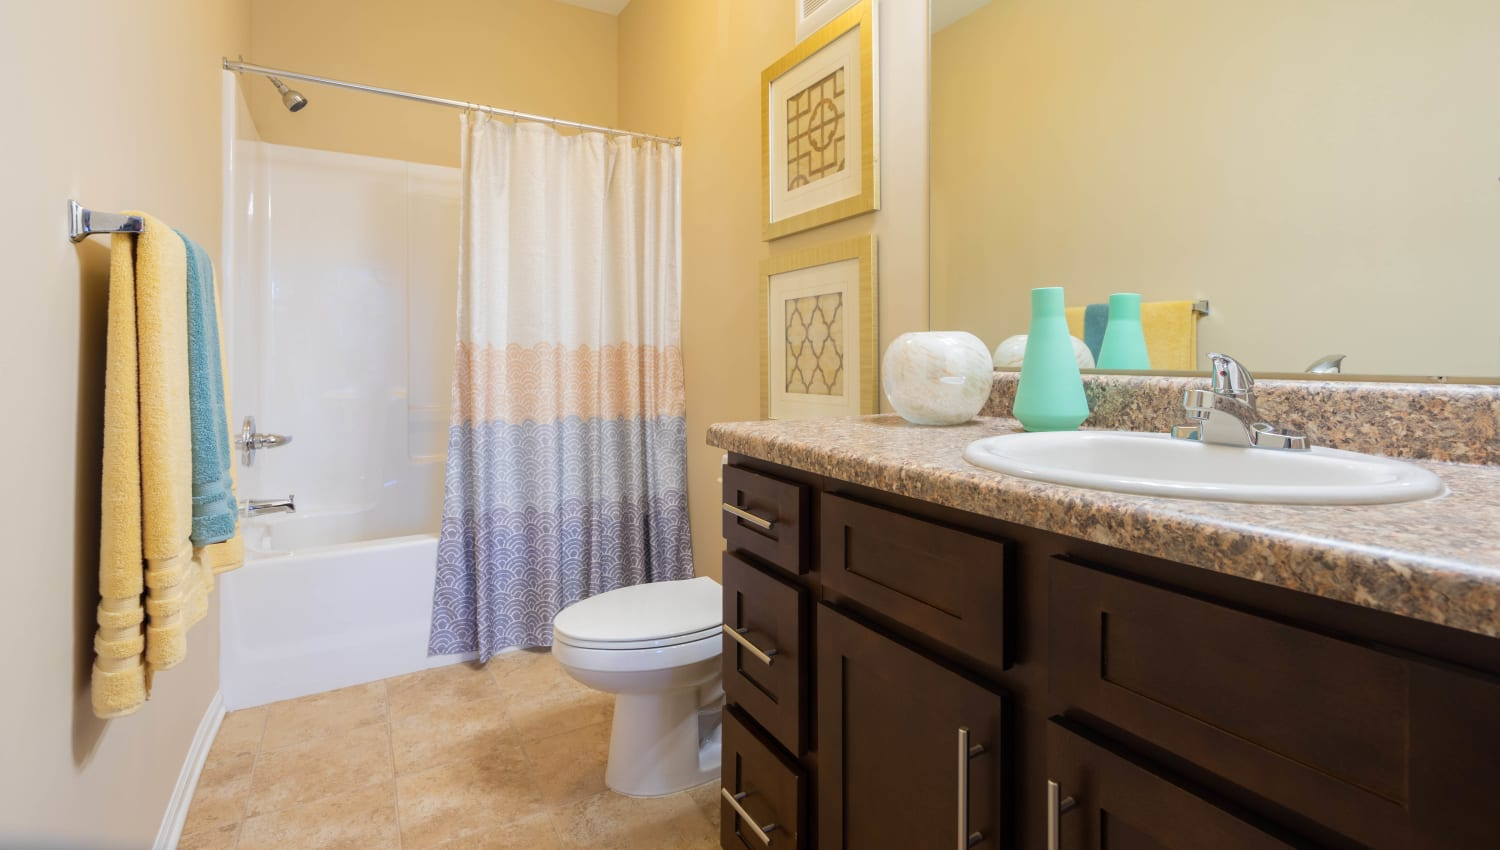 Spacious master bathroom with a tiled shower in a model home at Legends at White Oak in Ooltewah, Tennessee